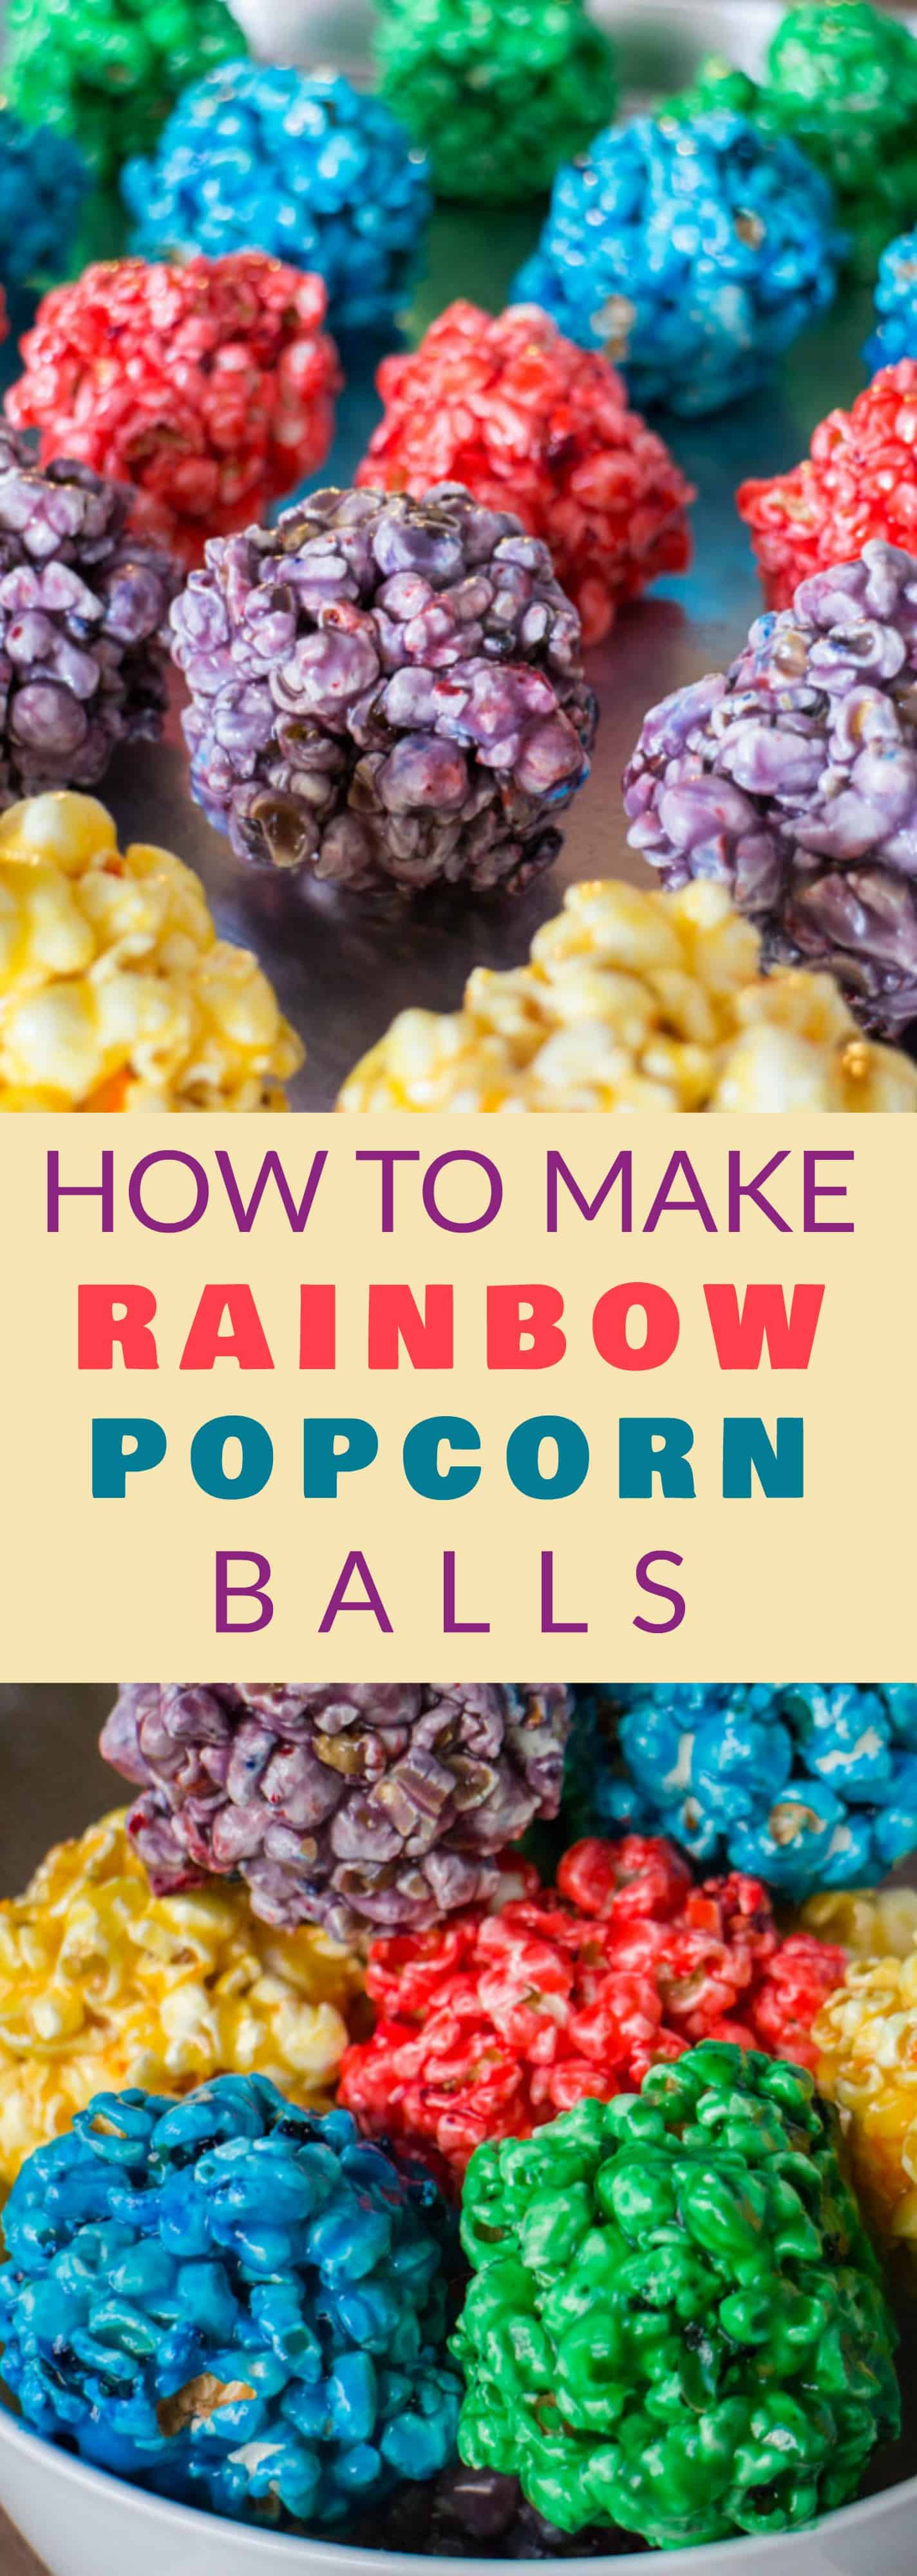 How to Make RAINBOW Popcorn Balls with marshmallow! This easy DIY recipe walks you through how to make popcorn balls that are colored using food dye and karo syrup! They're a great snack and dessert for birthday parties!